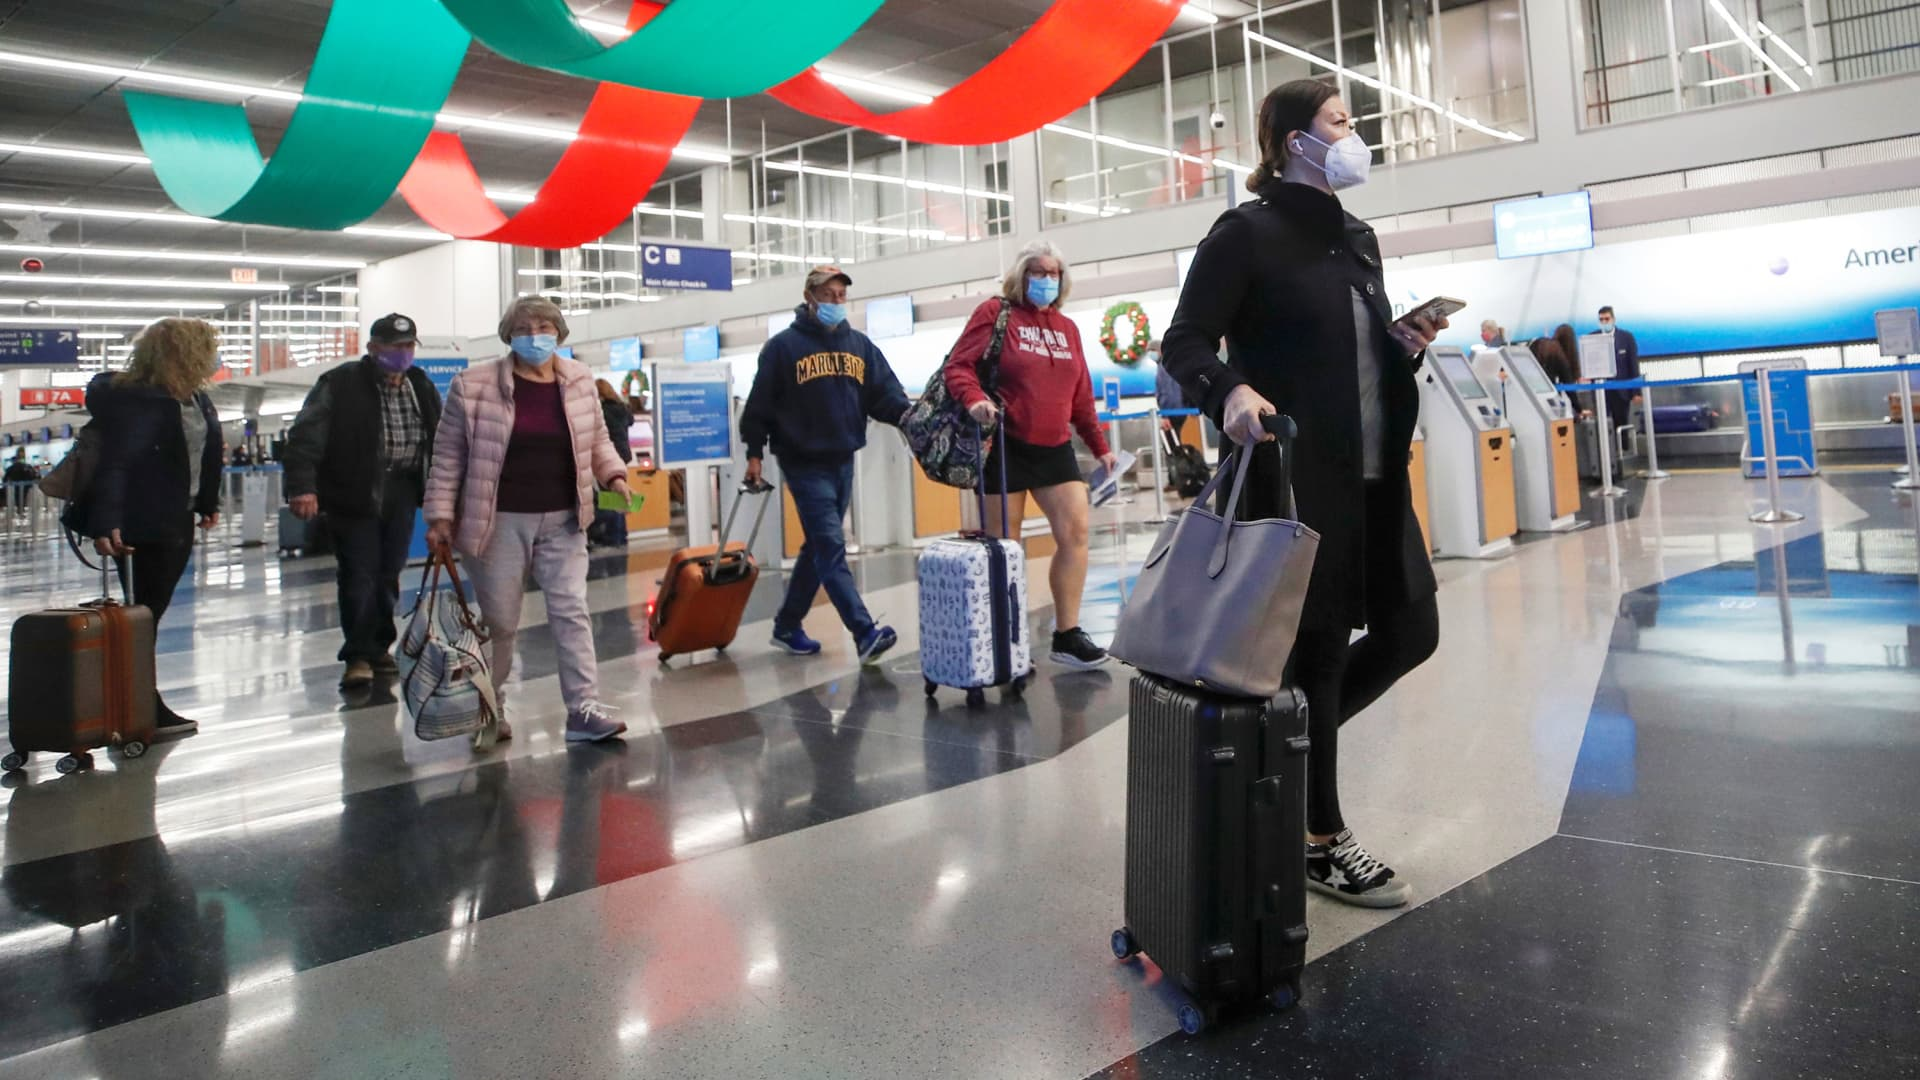 Travelers pass through O'Hare International Airport ahead of the Thanksgiving holiday during the coronavirus disease (COVID-19) pandemic, in Chicago, Illinois, November 25, 2020.